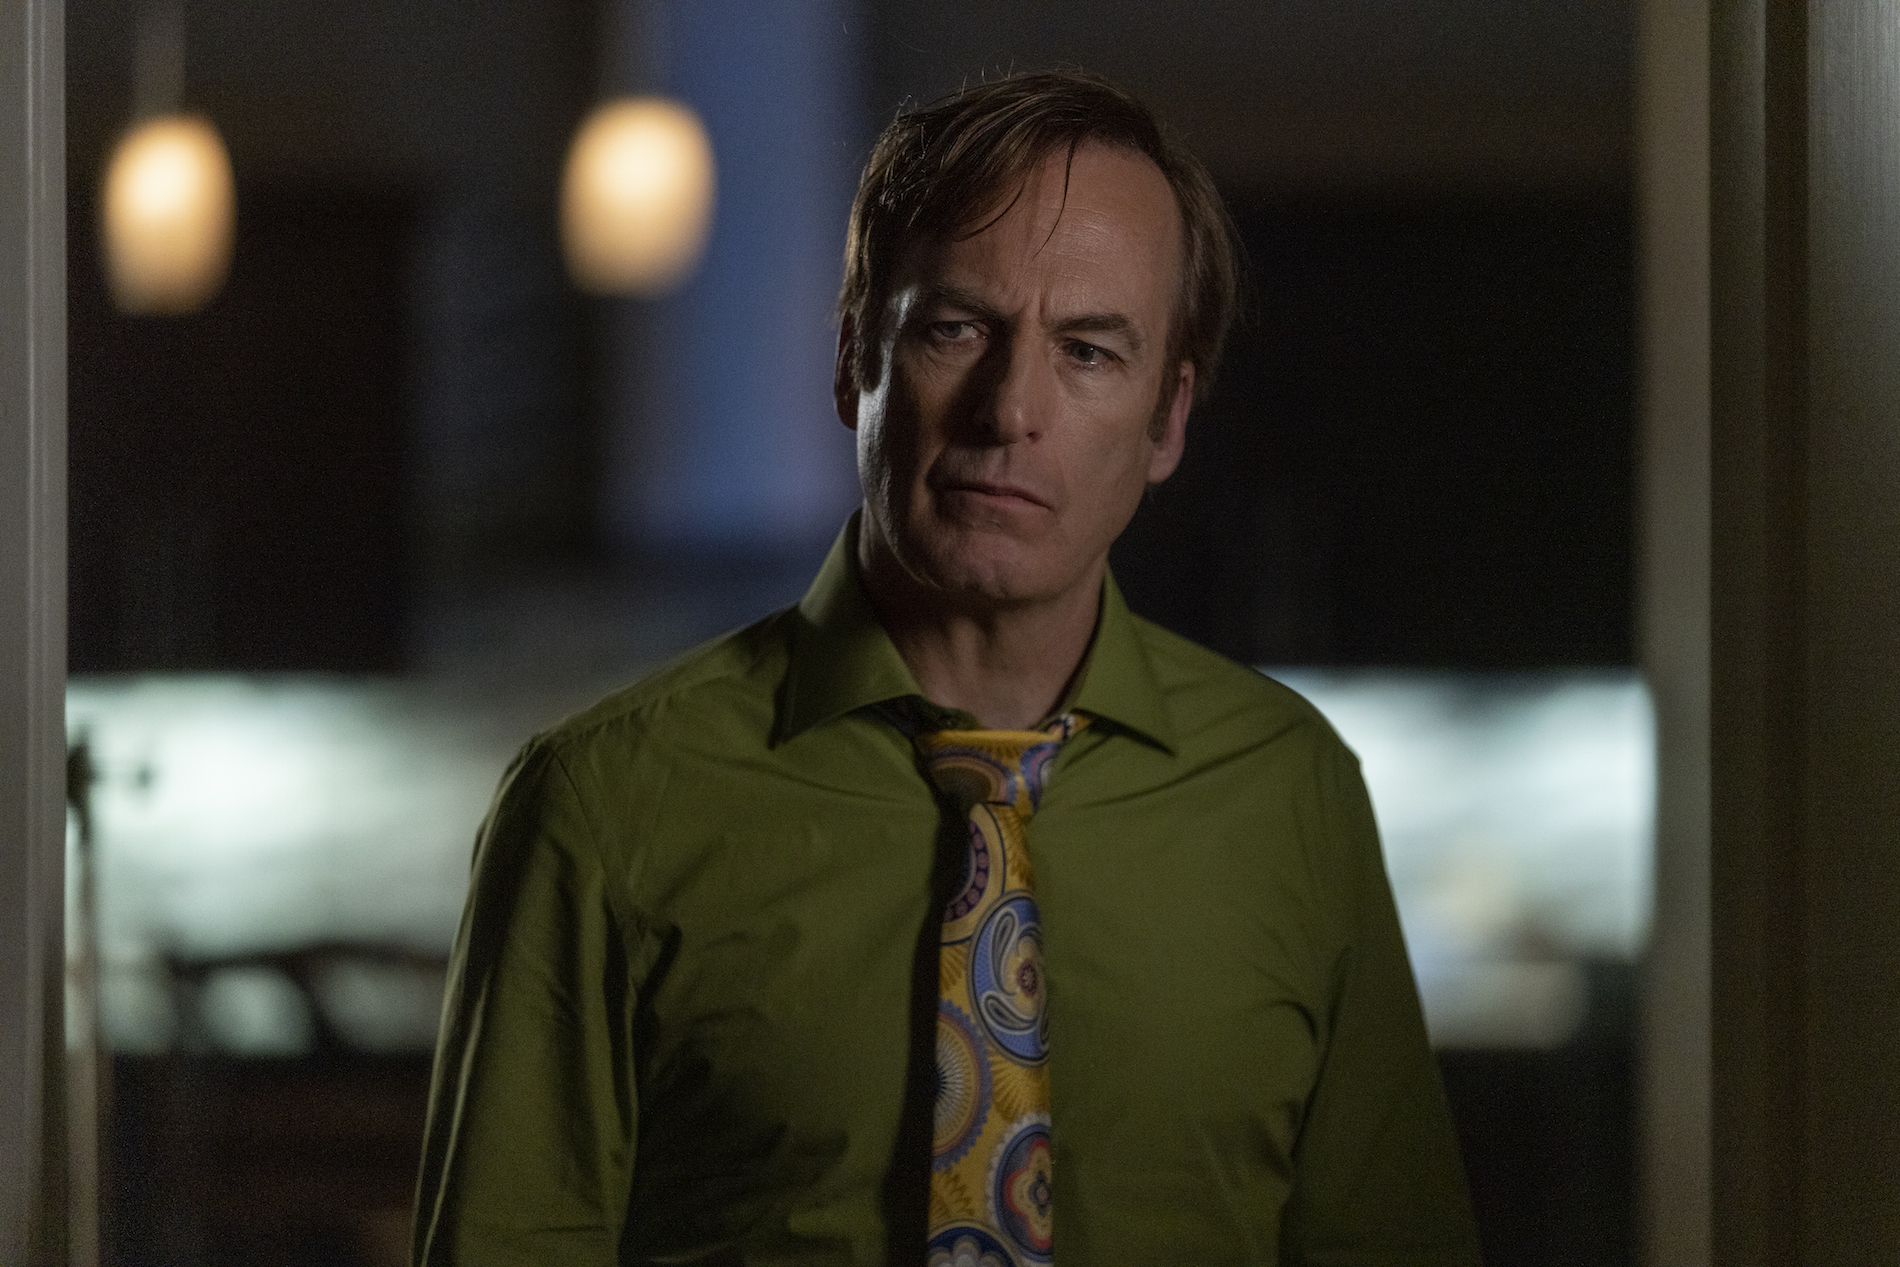 Bob Odenkirk as Jimmy McGill - Better Call Saul _ Season 5, Episode 5 - Photo Credit: Greg Lewis/AMC/Sony Pictures Television